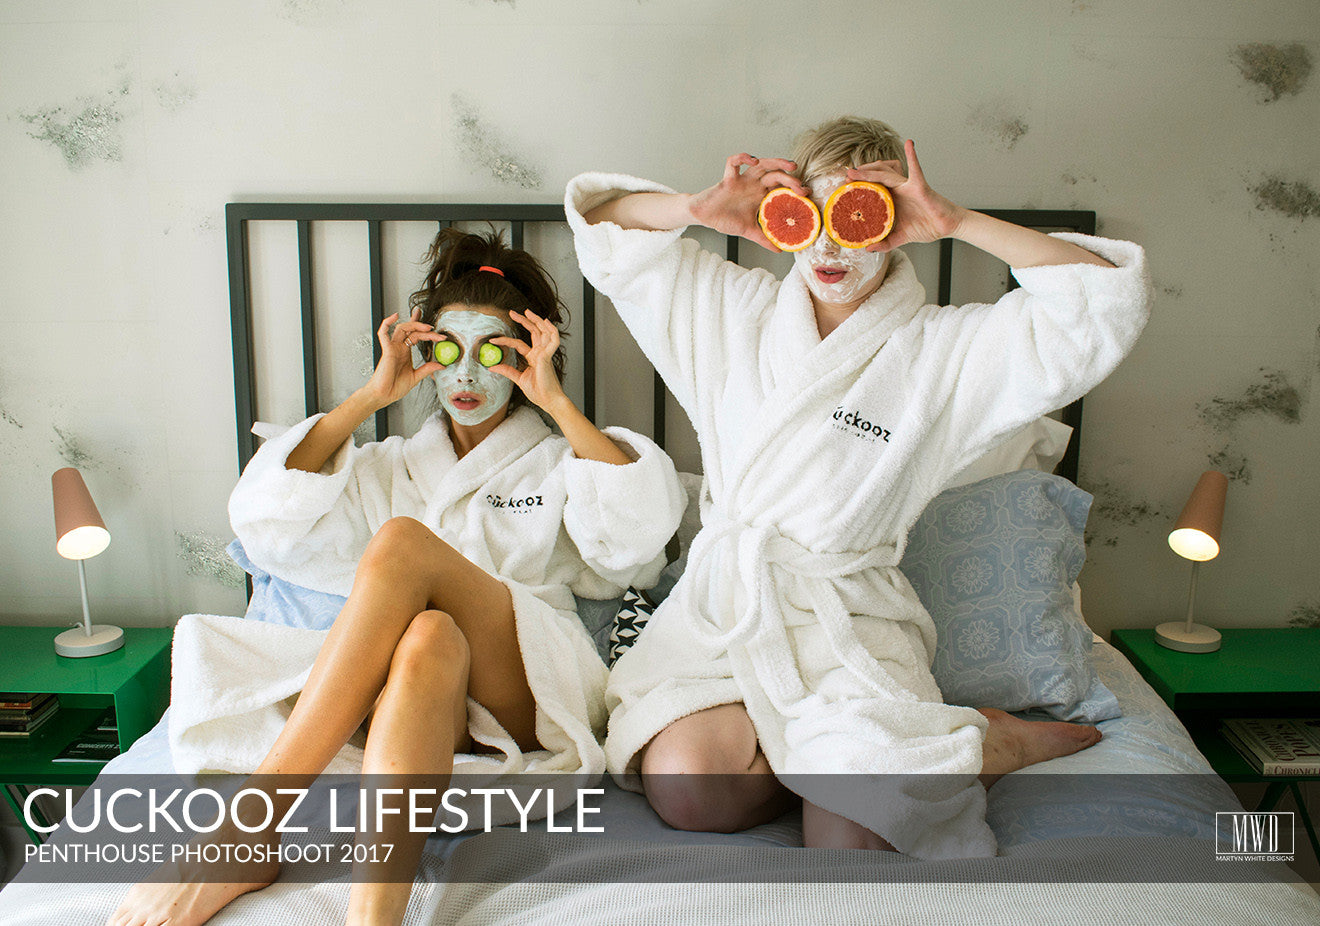 Cuckooz long stay serviced apartments London pamper session